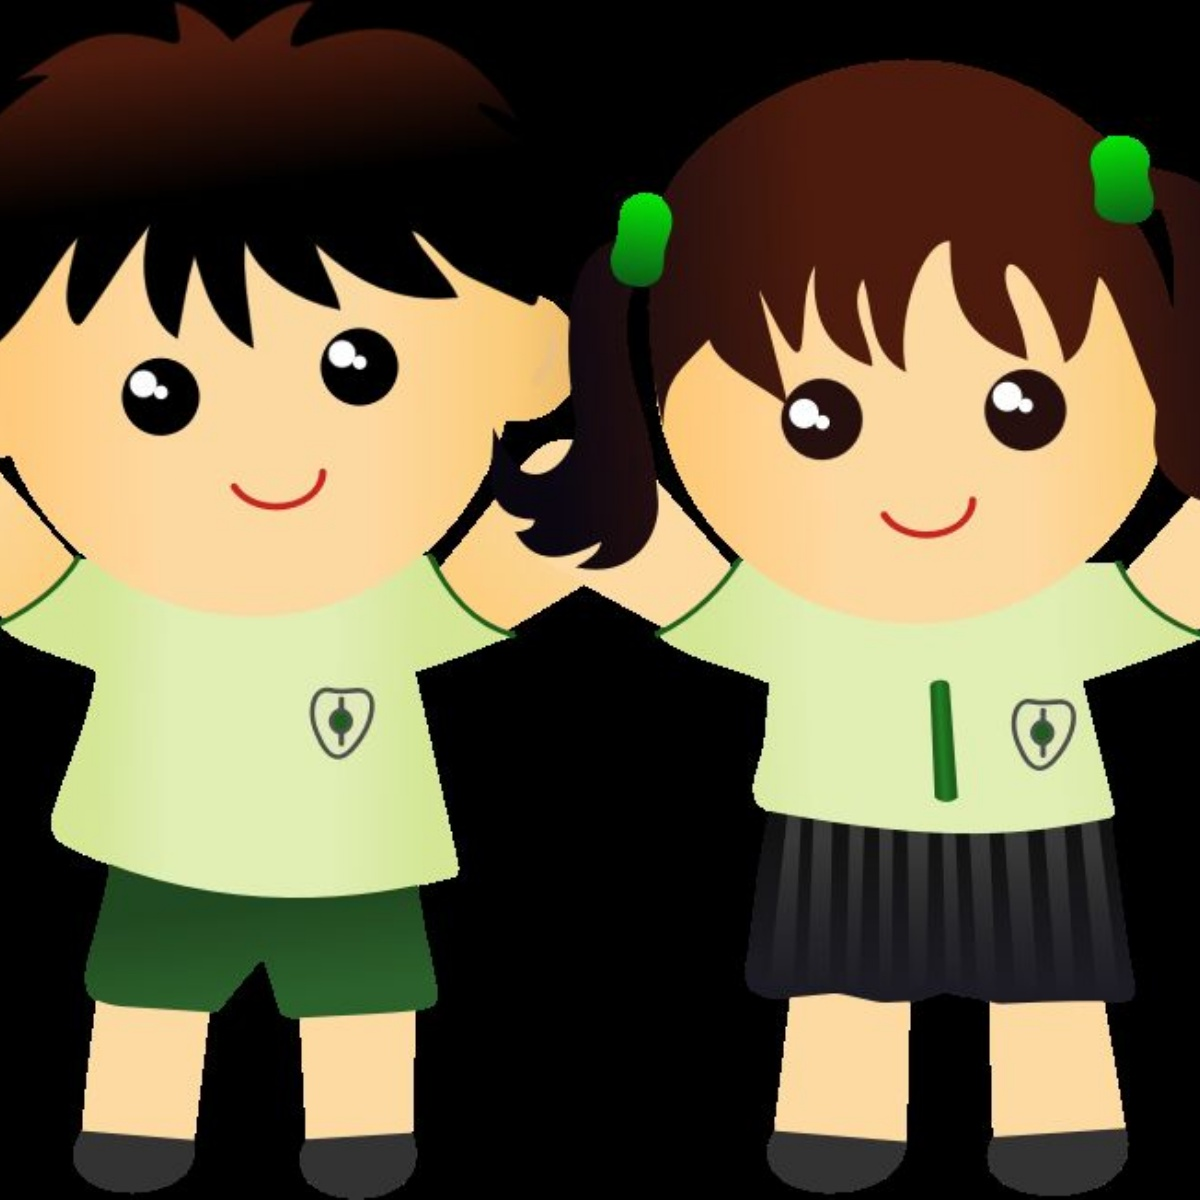 Reminder clipart uniform. Acorn trust school